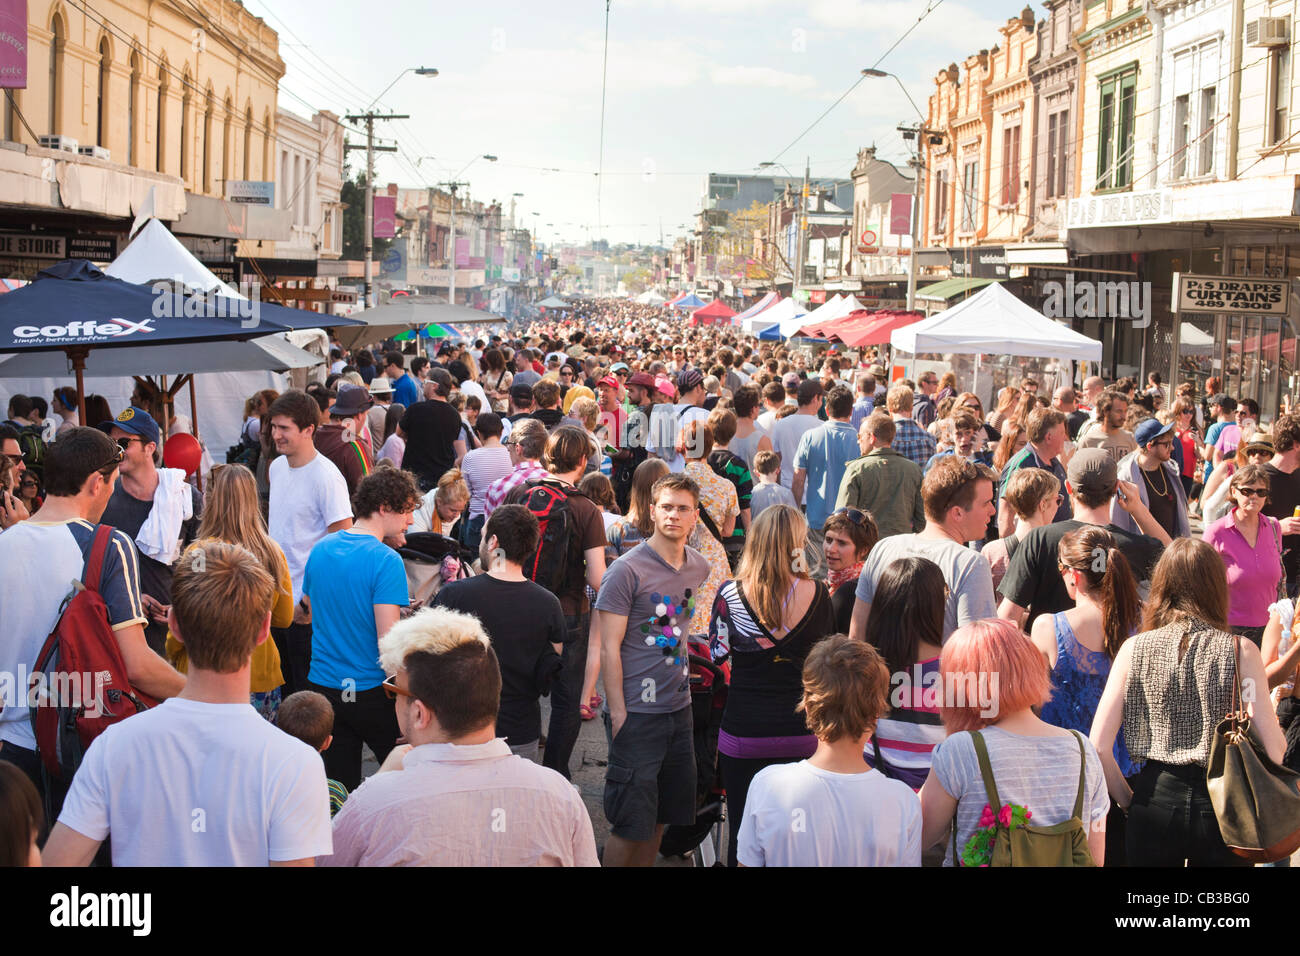 High Noon community festival is a Northcote local music fest in Melbourne, Australia crowded streets at the festival. Stock Photo